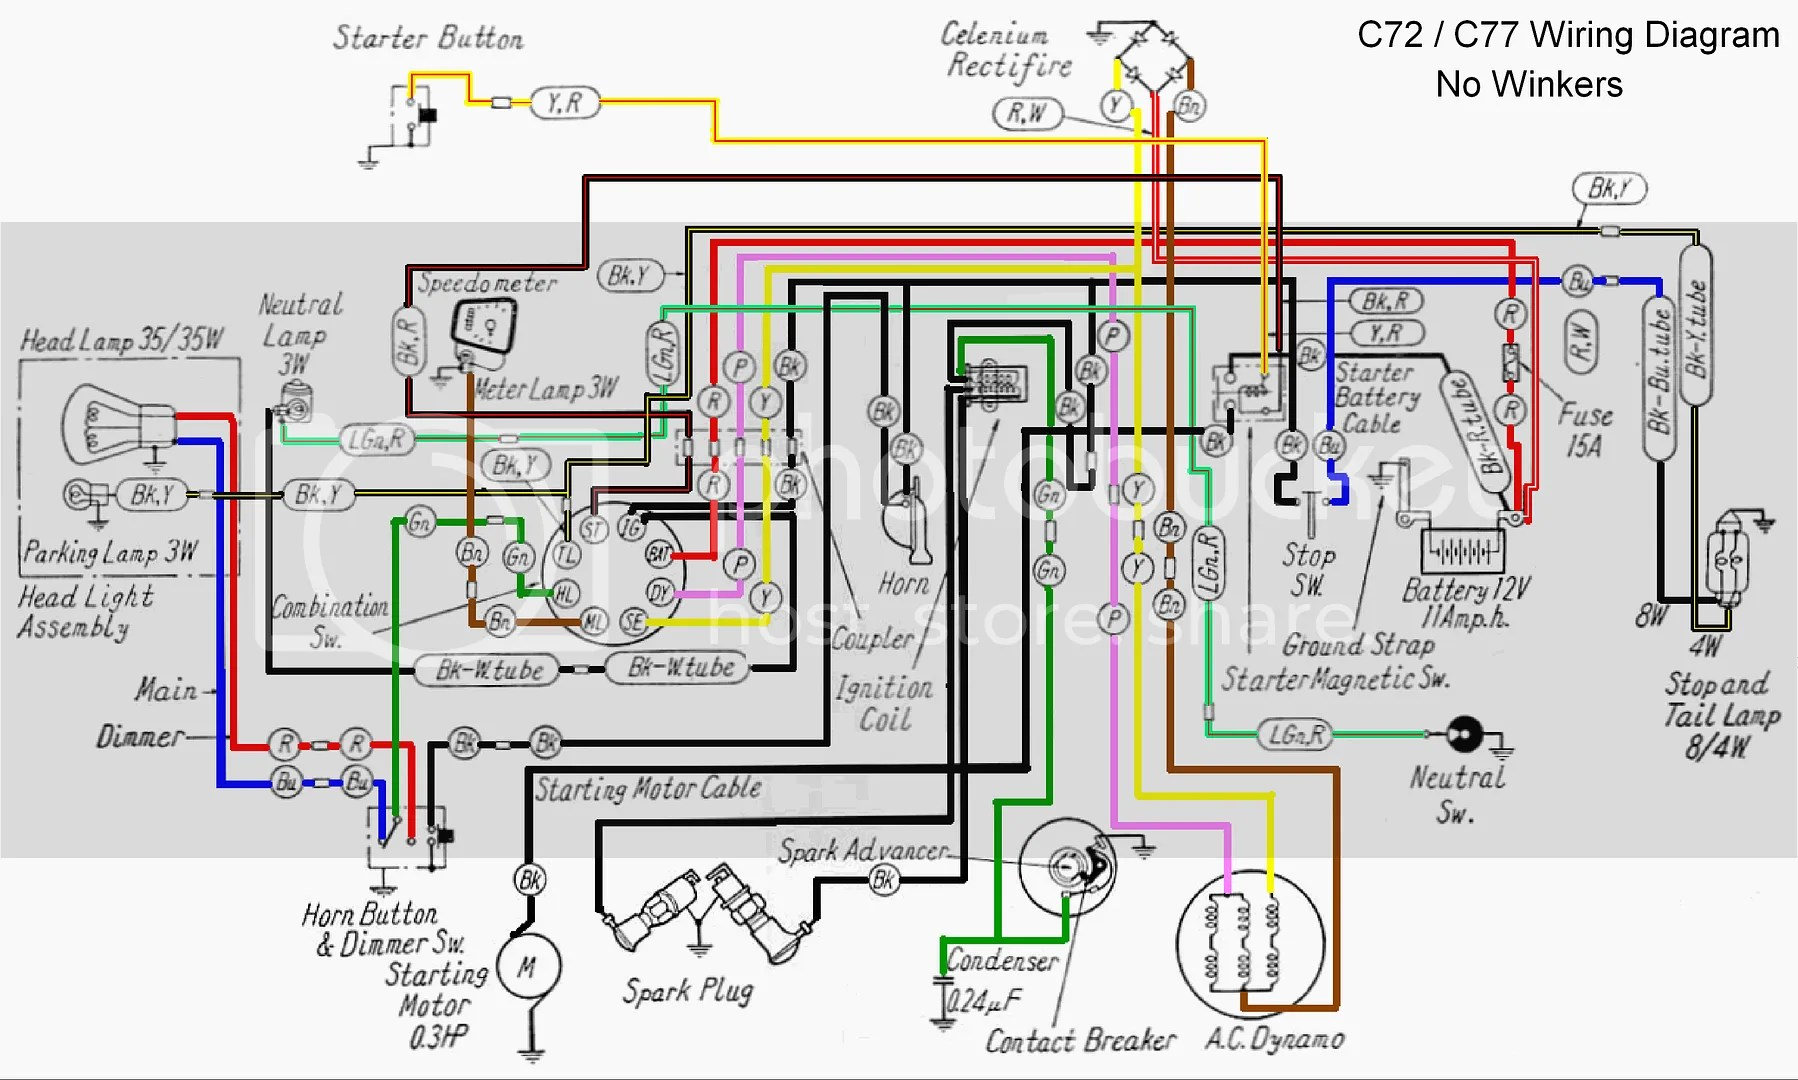 cb450 wiring diagram 2002 nissan frontier stereo cl72 data guitar diagrams